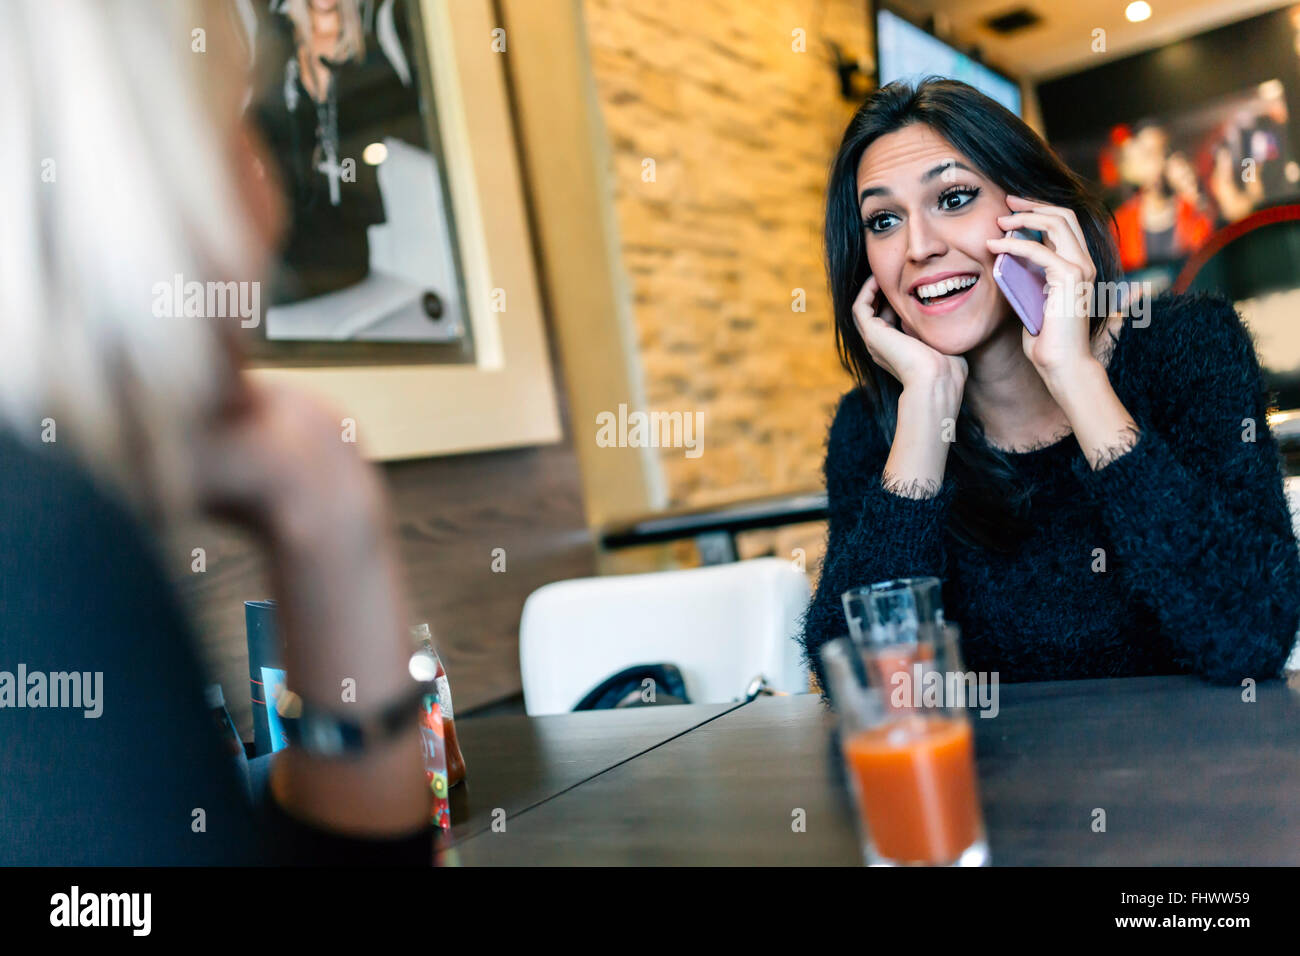 Beautiful brunette talking on phone in cafe accompanied by friend - Stock Image